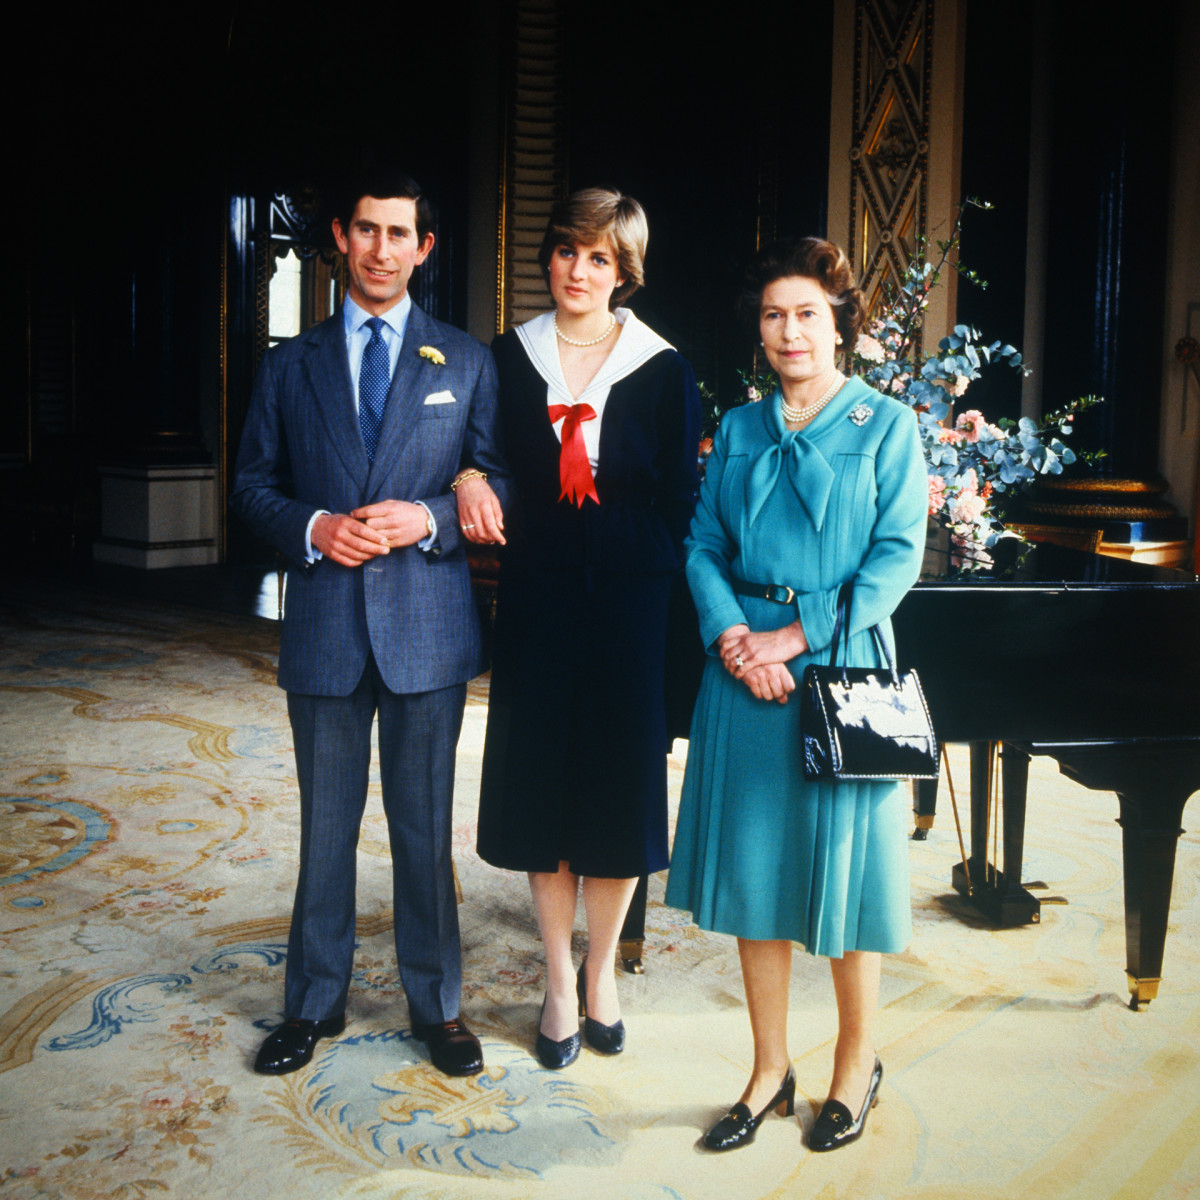 After the Privy Council sanctioned their wedding, Lady Diana Spencer and Prince Charles pose with Queen Elizabeth at Buckingham Palace, in March 1981.